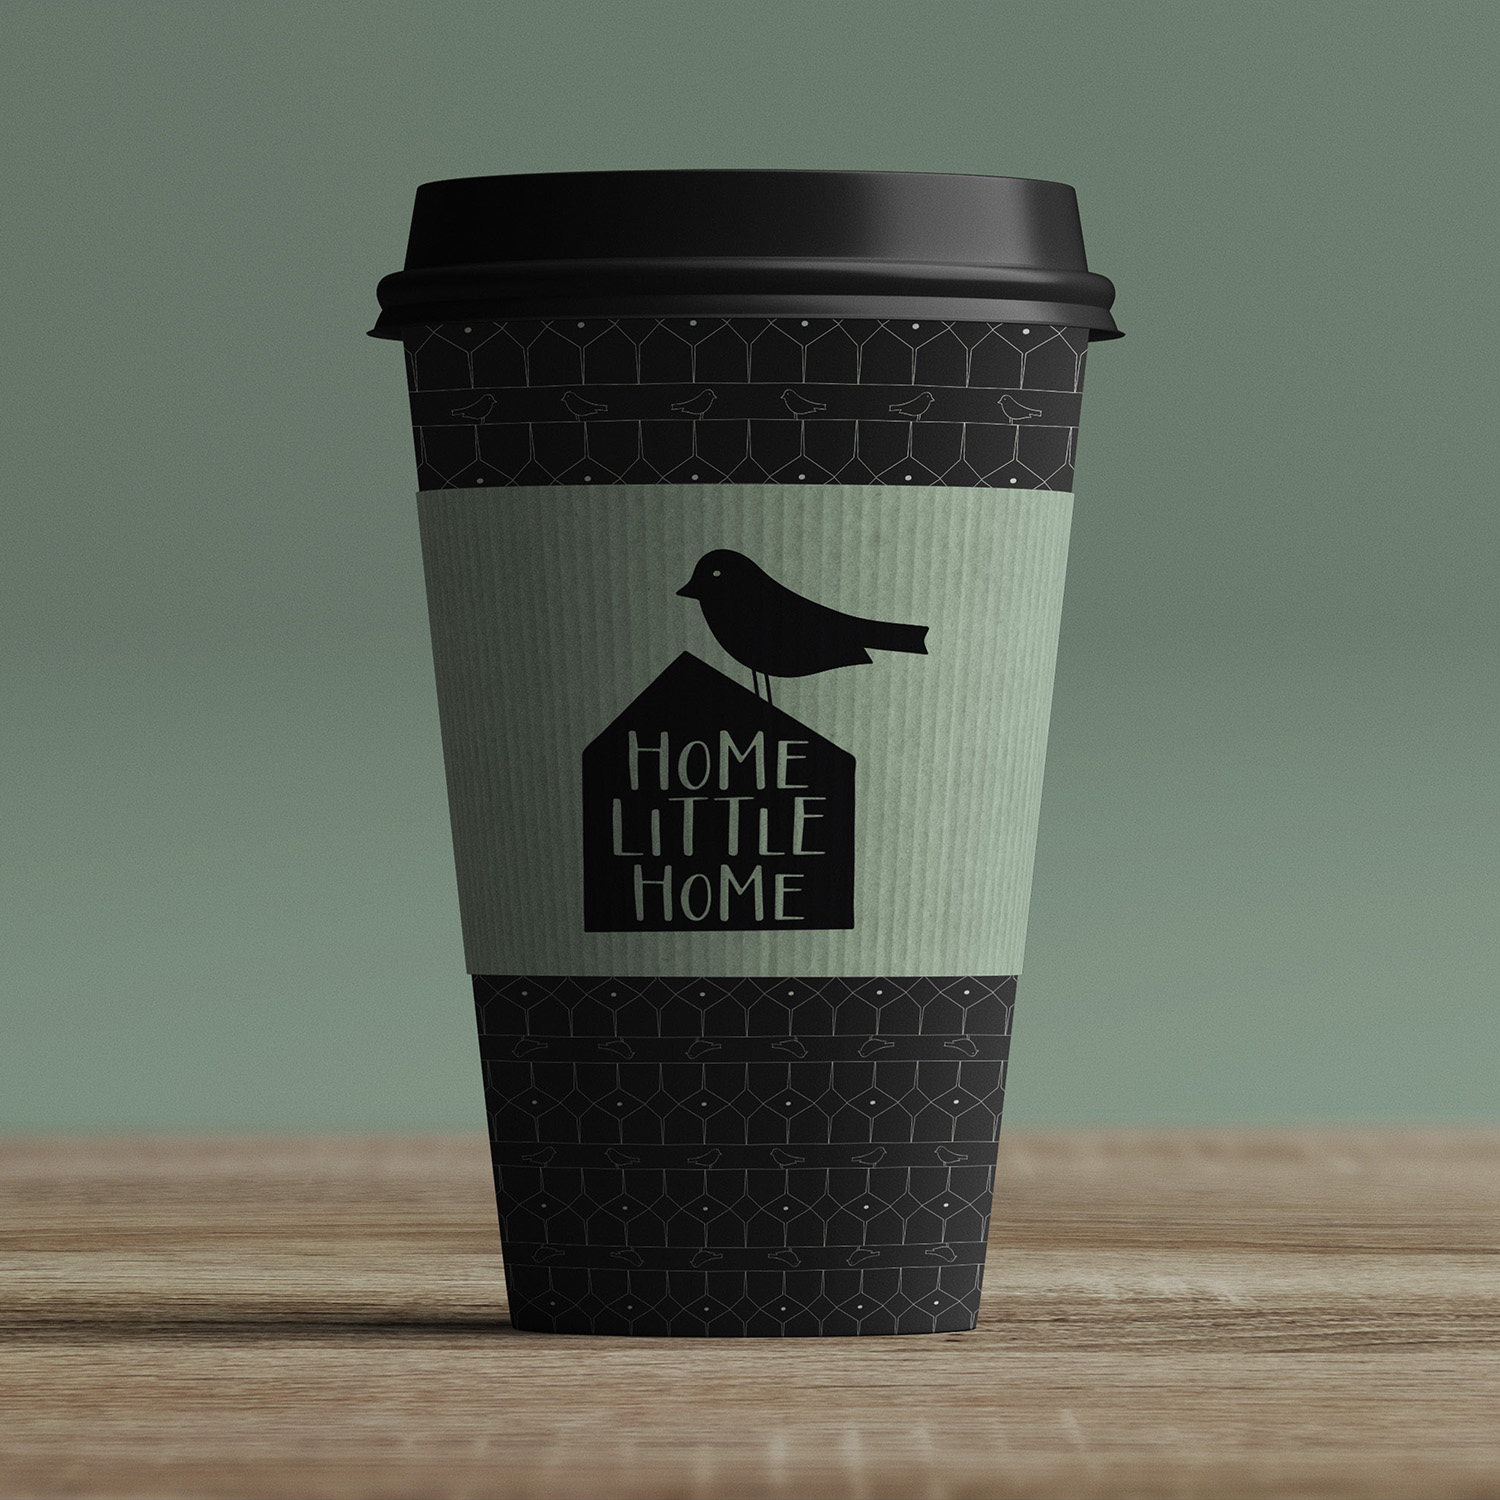 Themis Kalokerinos Design Creates New Brand Identity for a Cute Little Café